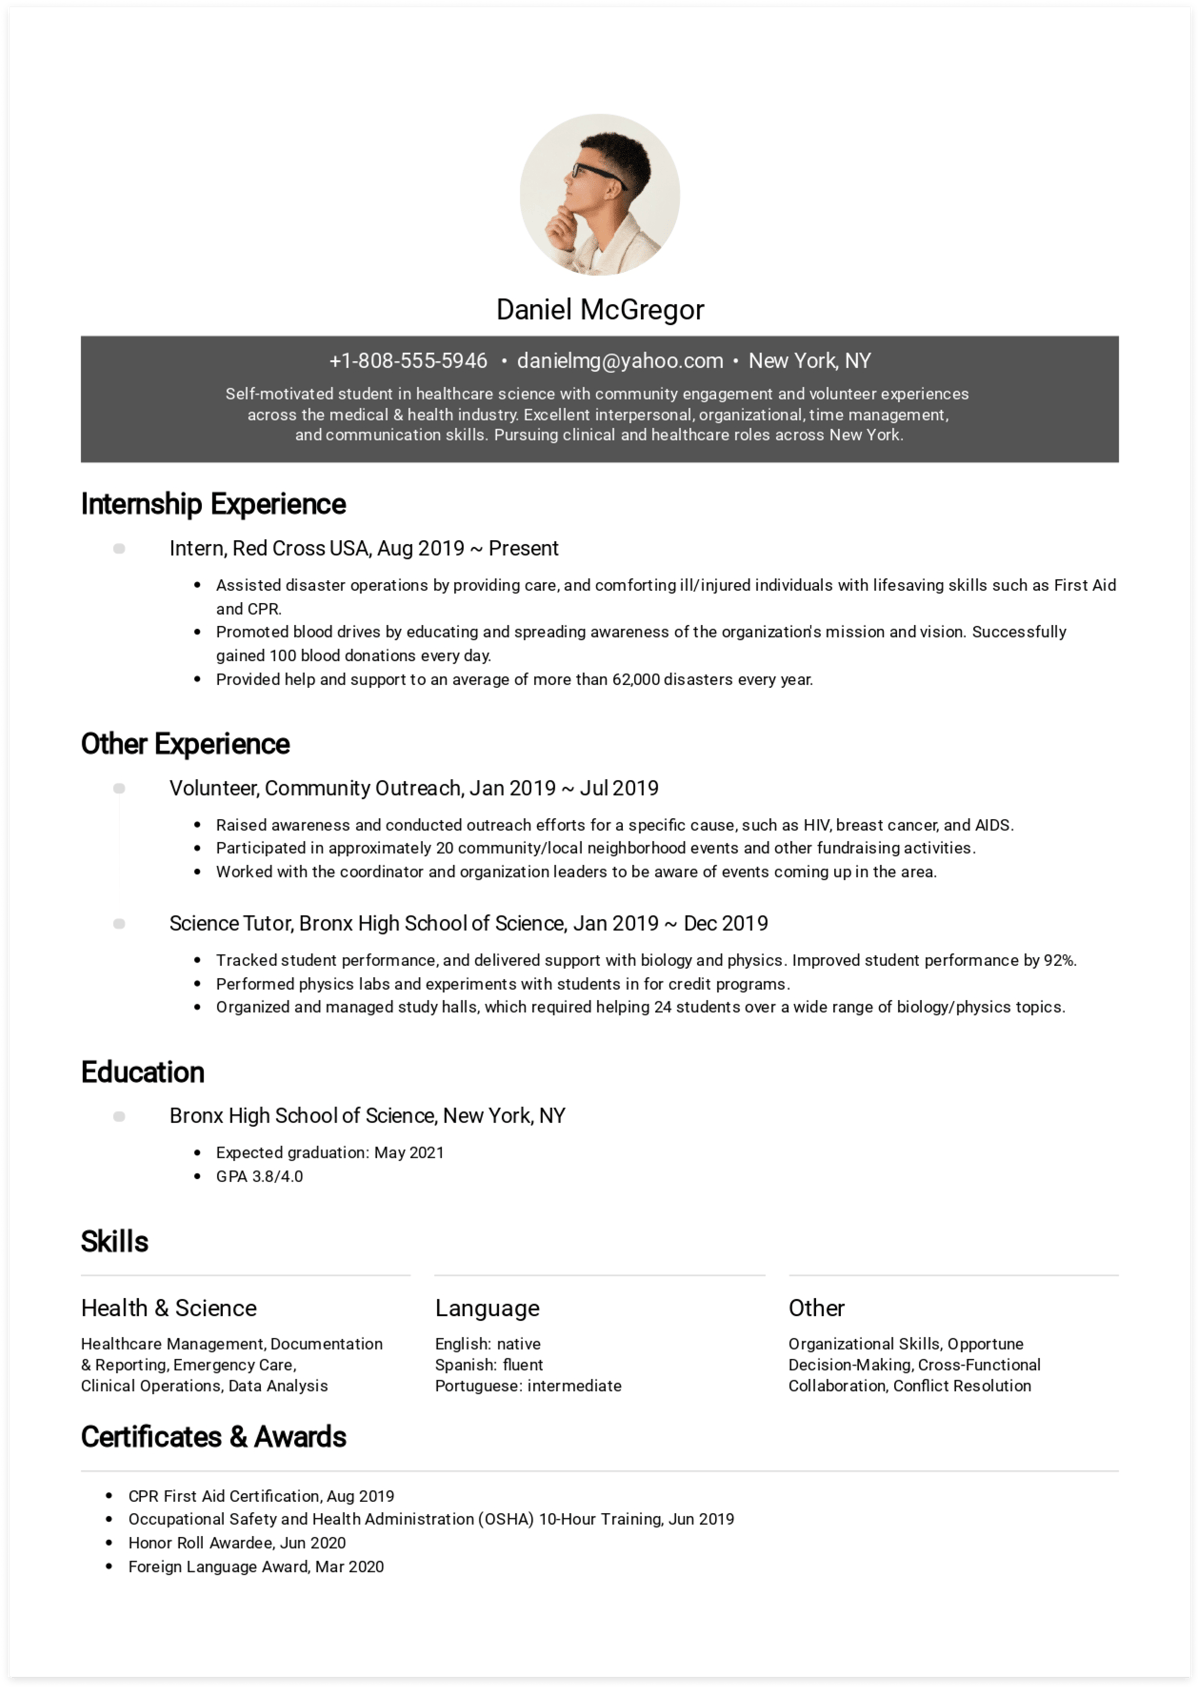 Click to download Daniel's high school student resume! Generated via CakeResume.